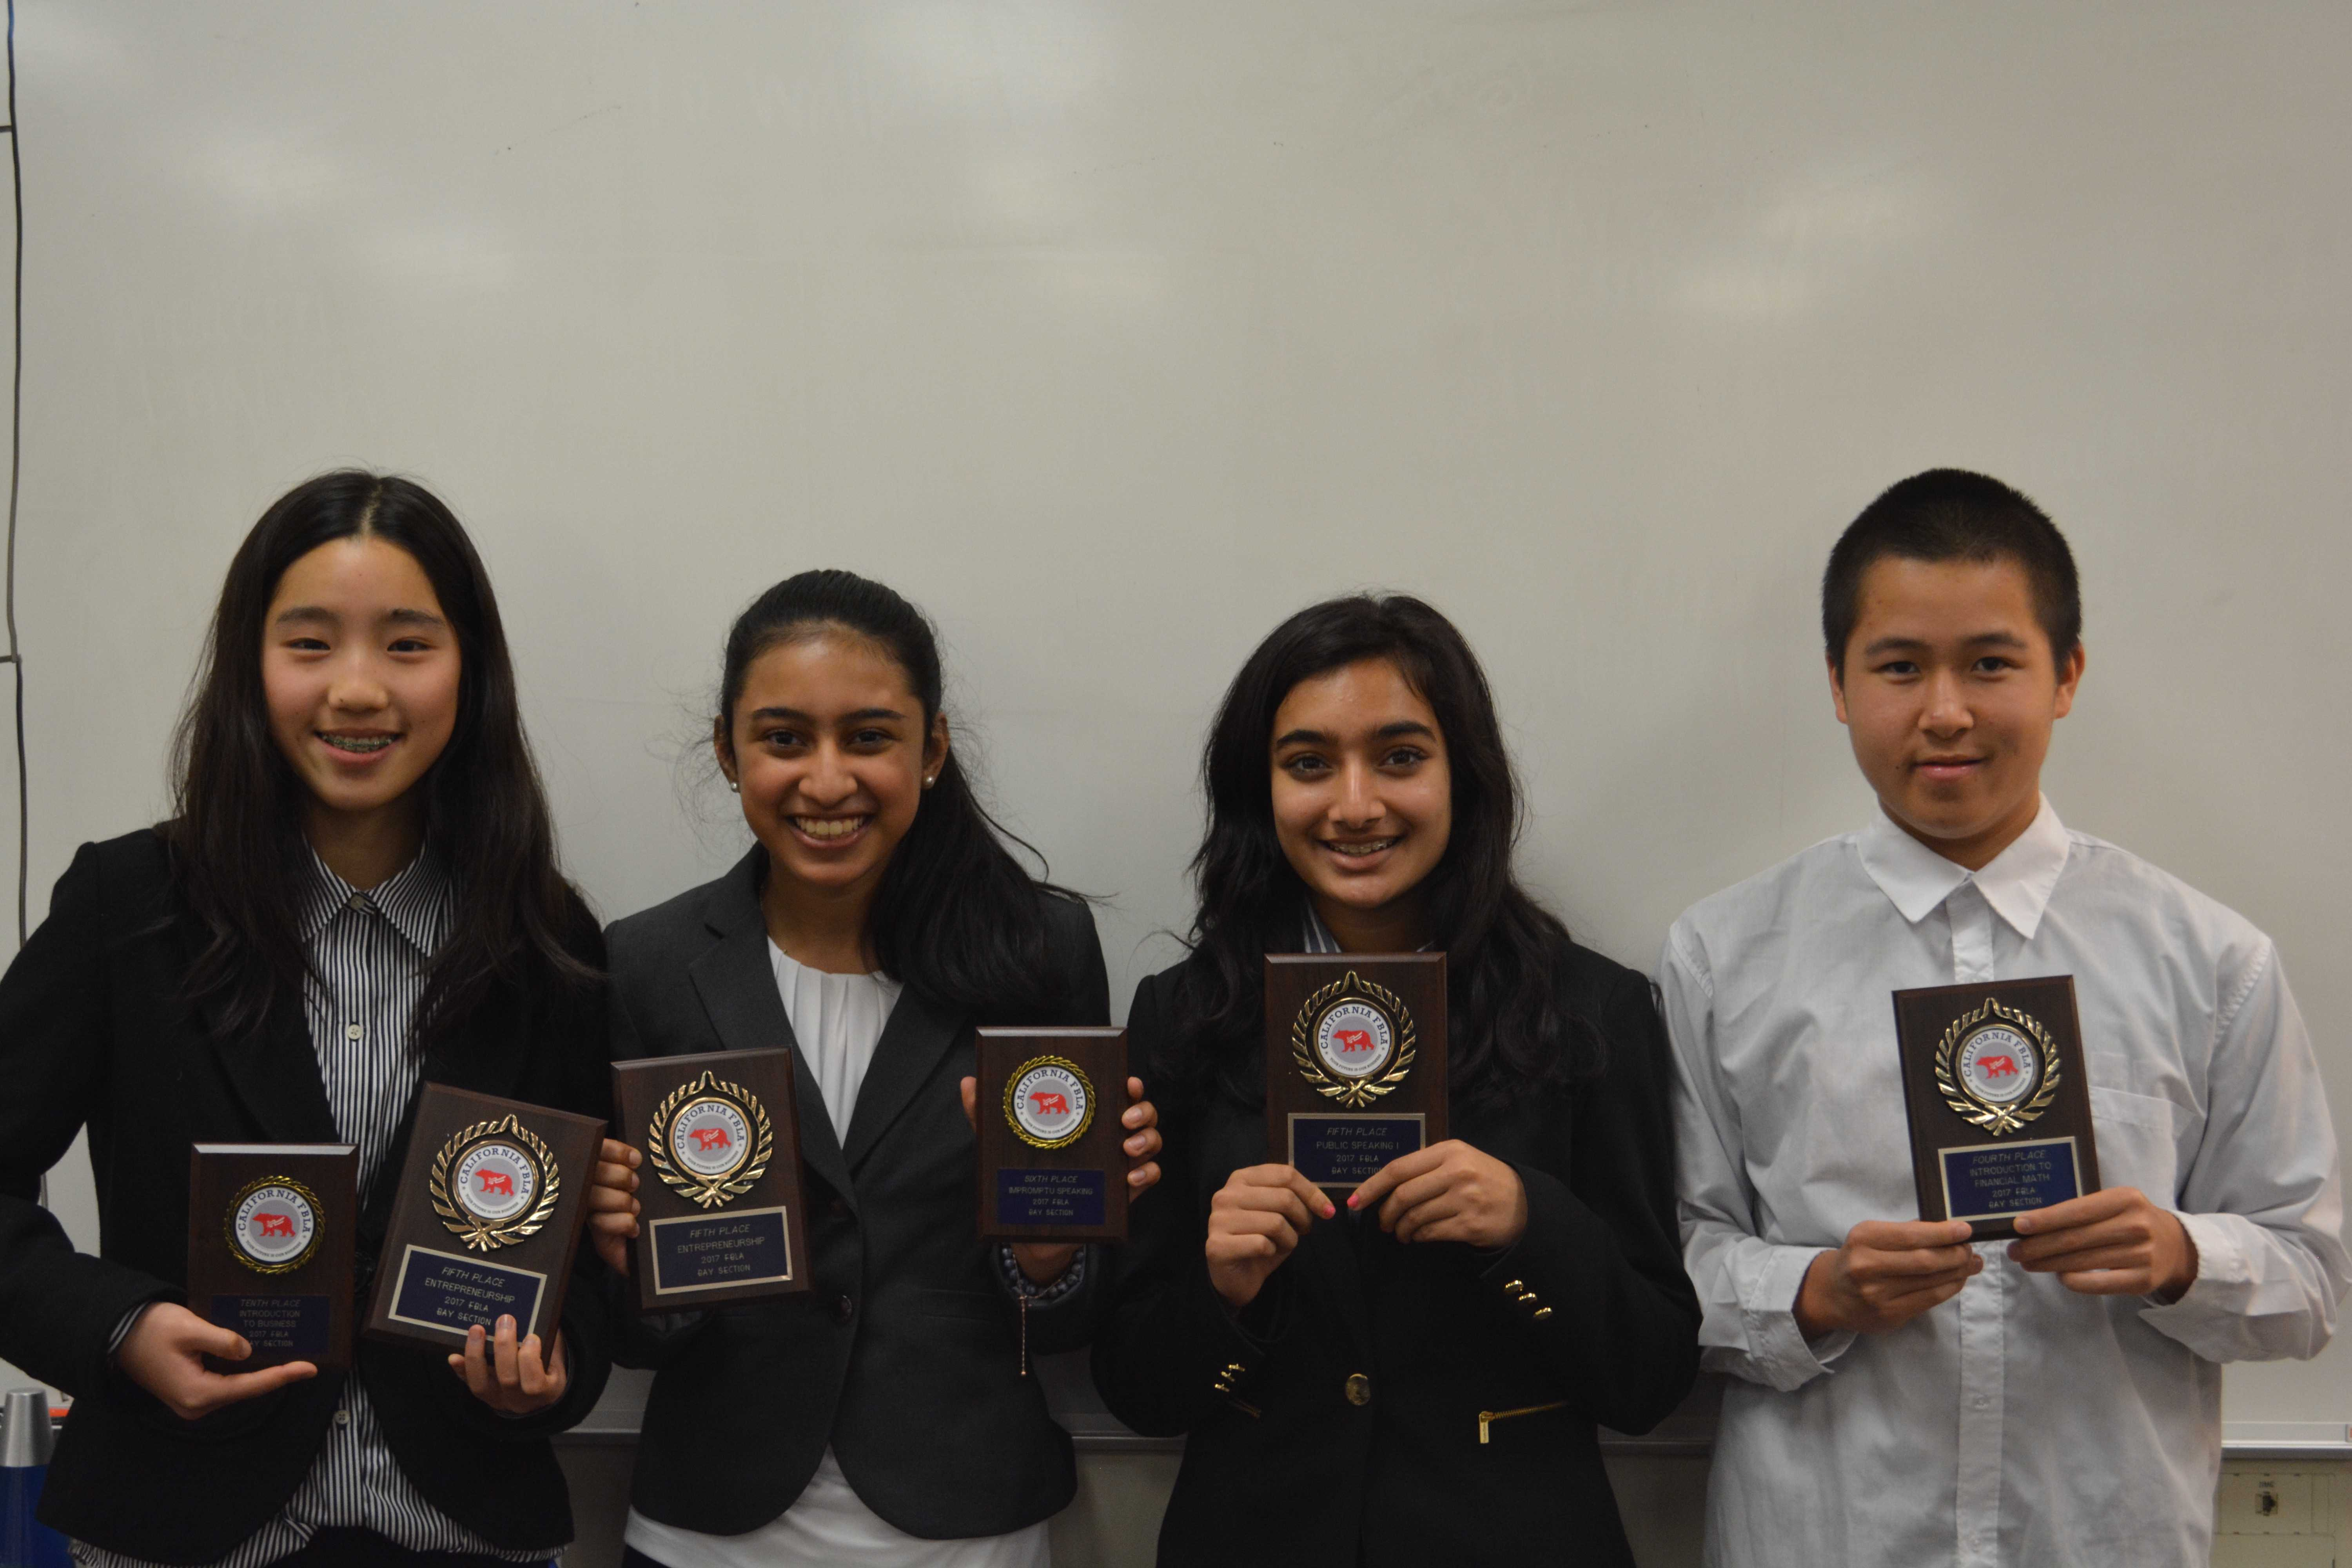 Left to right: Emily Wang, Ria Vora, Soumya Jhaveri and Leyton Ho pose with their plaques after placing at different conference events. Caity Berry, not pictured, also placed at the conference. Wang, Vora, and Ho will be competing at an upcoming state conference.